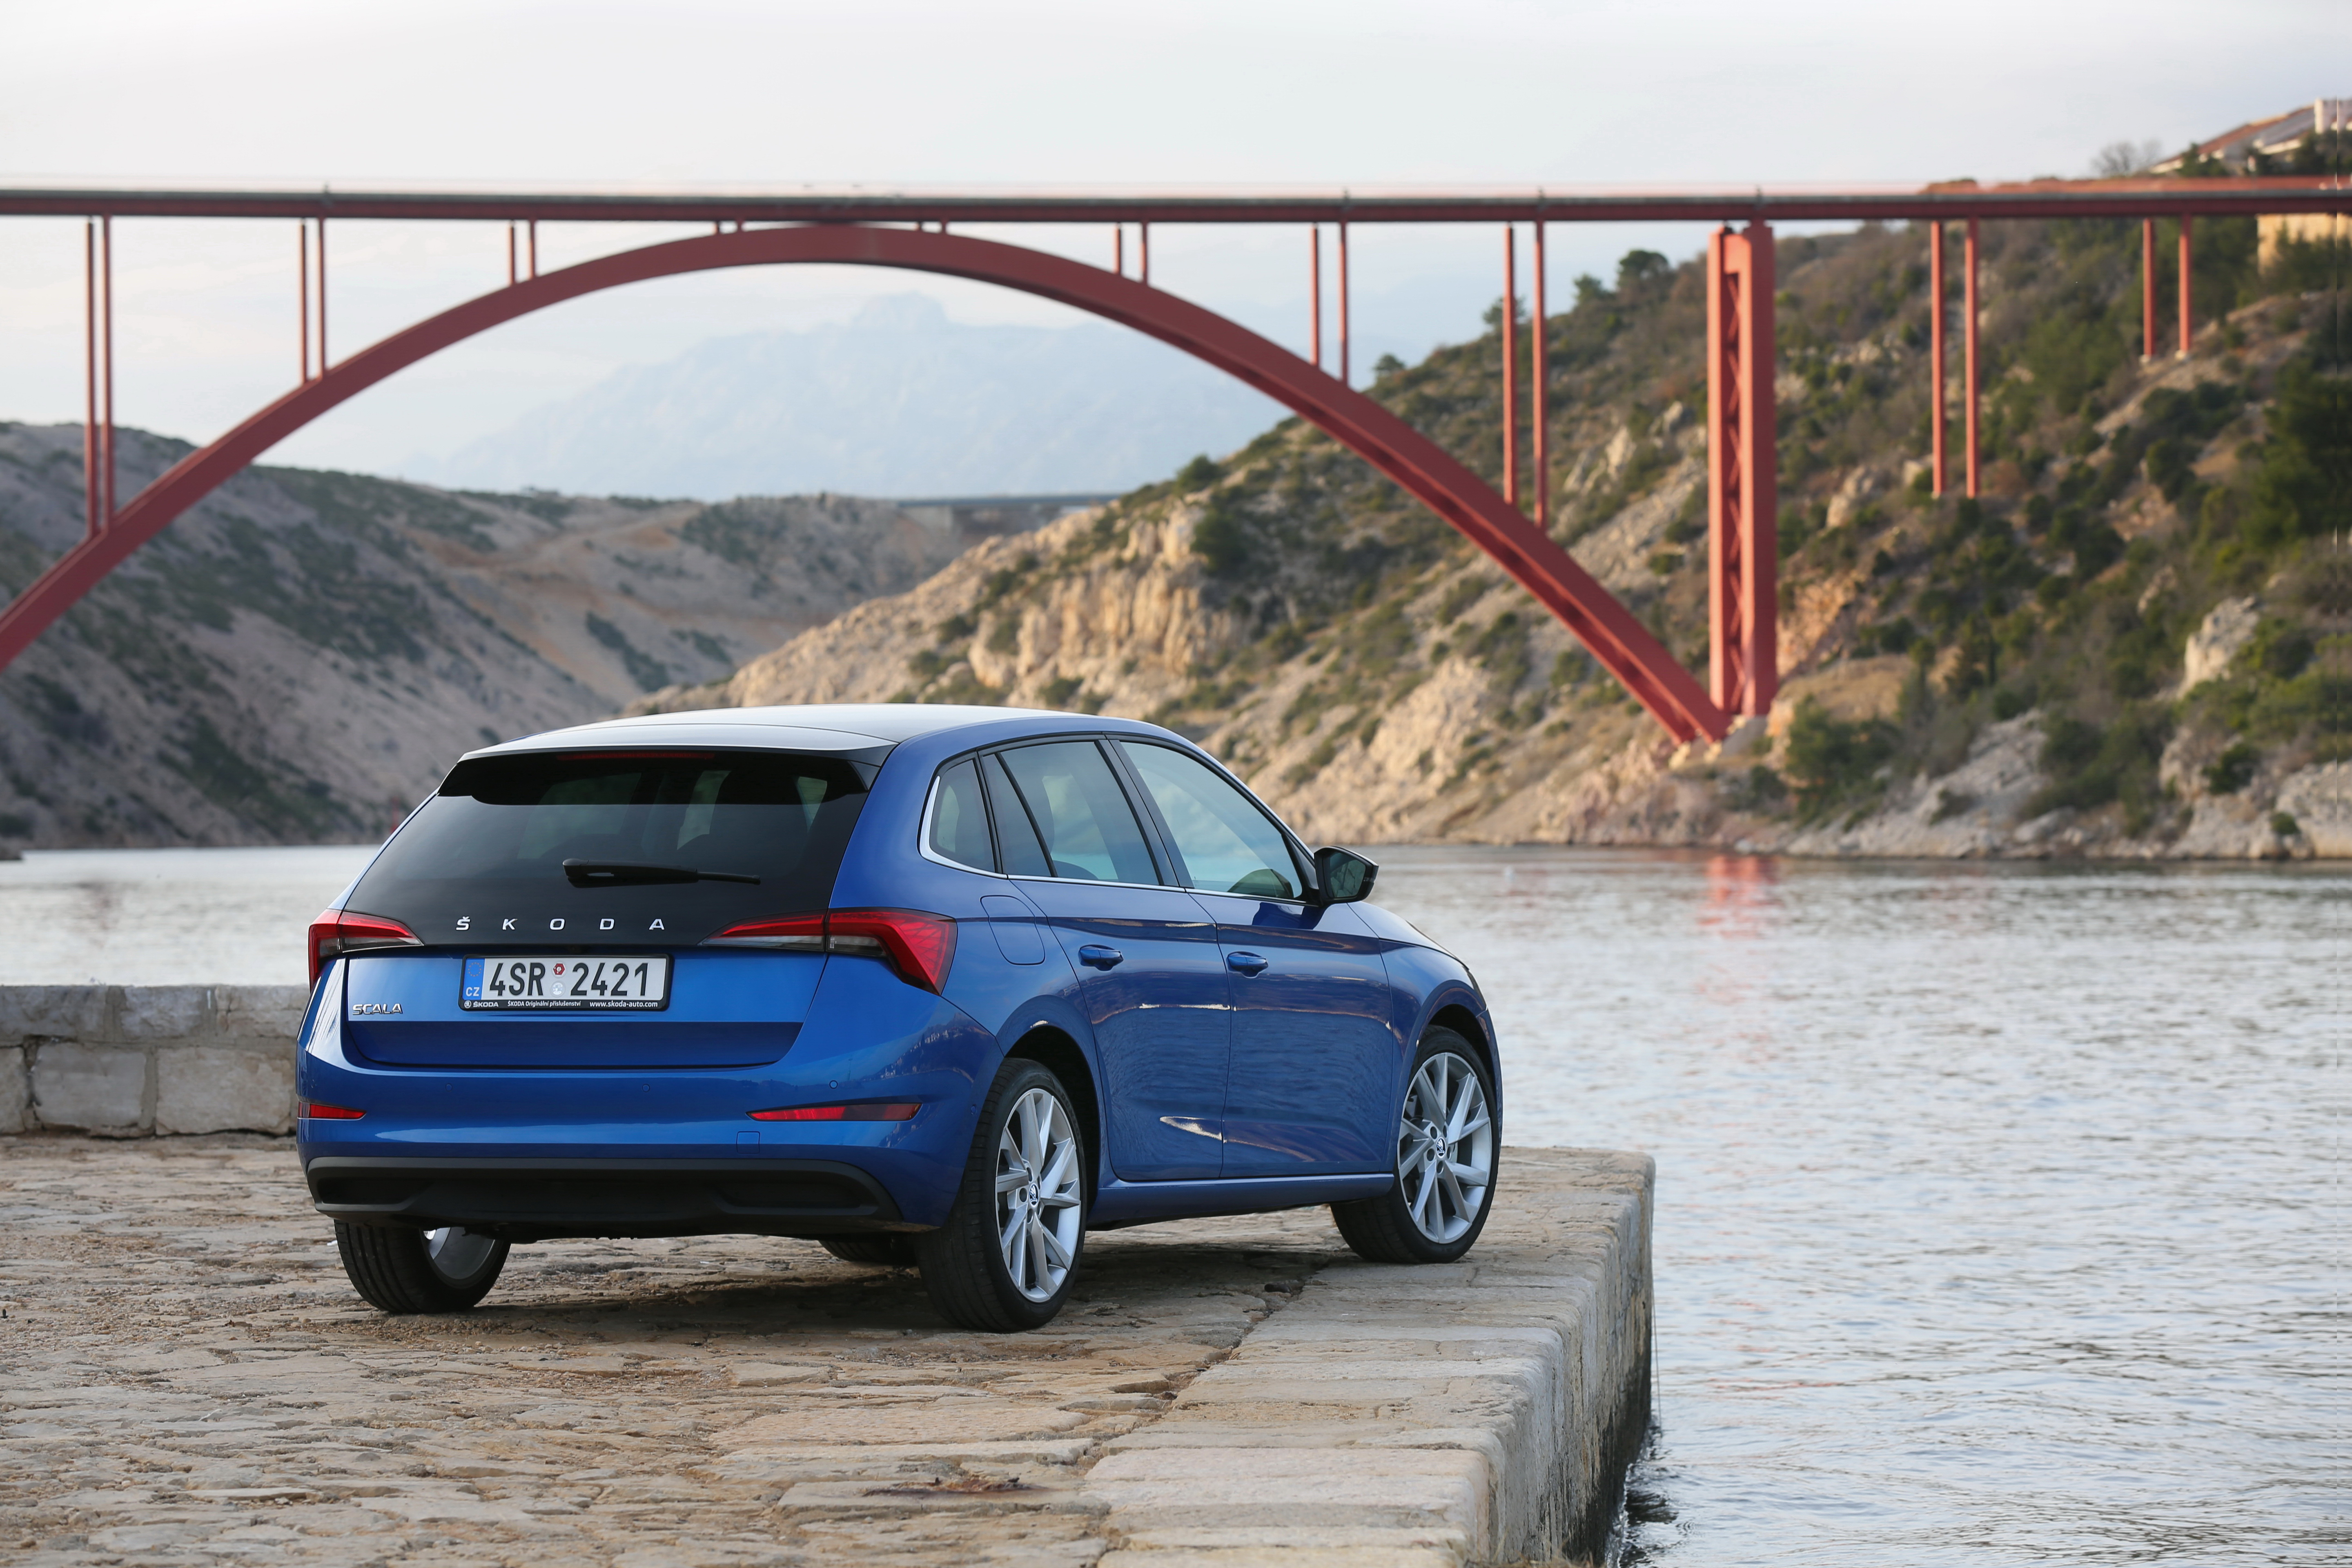 Race Blue and Quartz Grey on trend: the most popular colours for the SKODA compact models SCALA and KAMIQ - Image 2